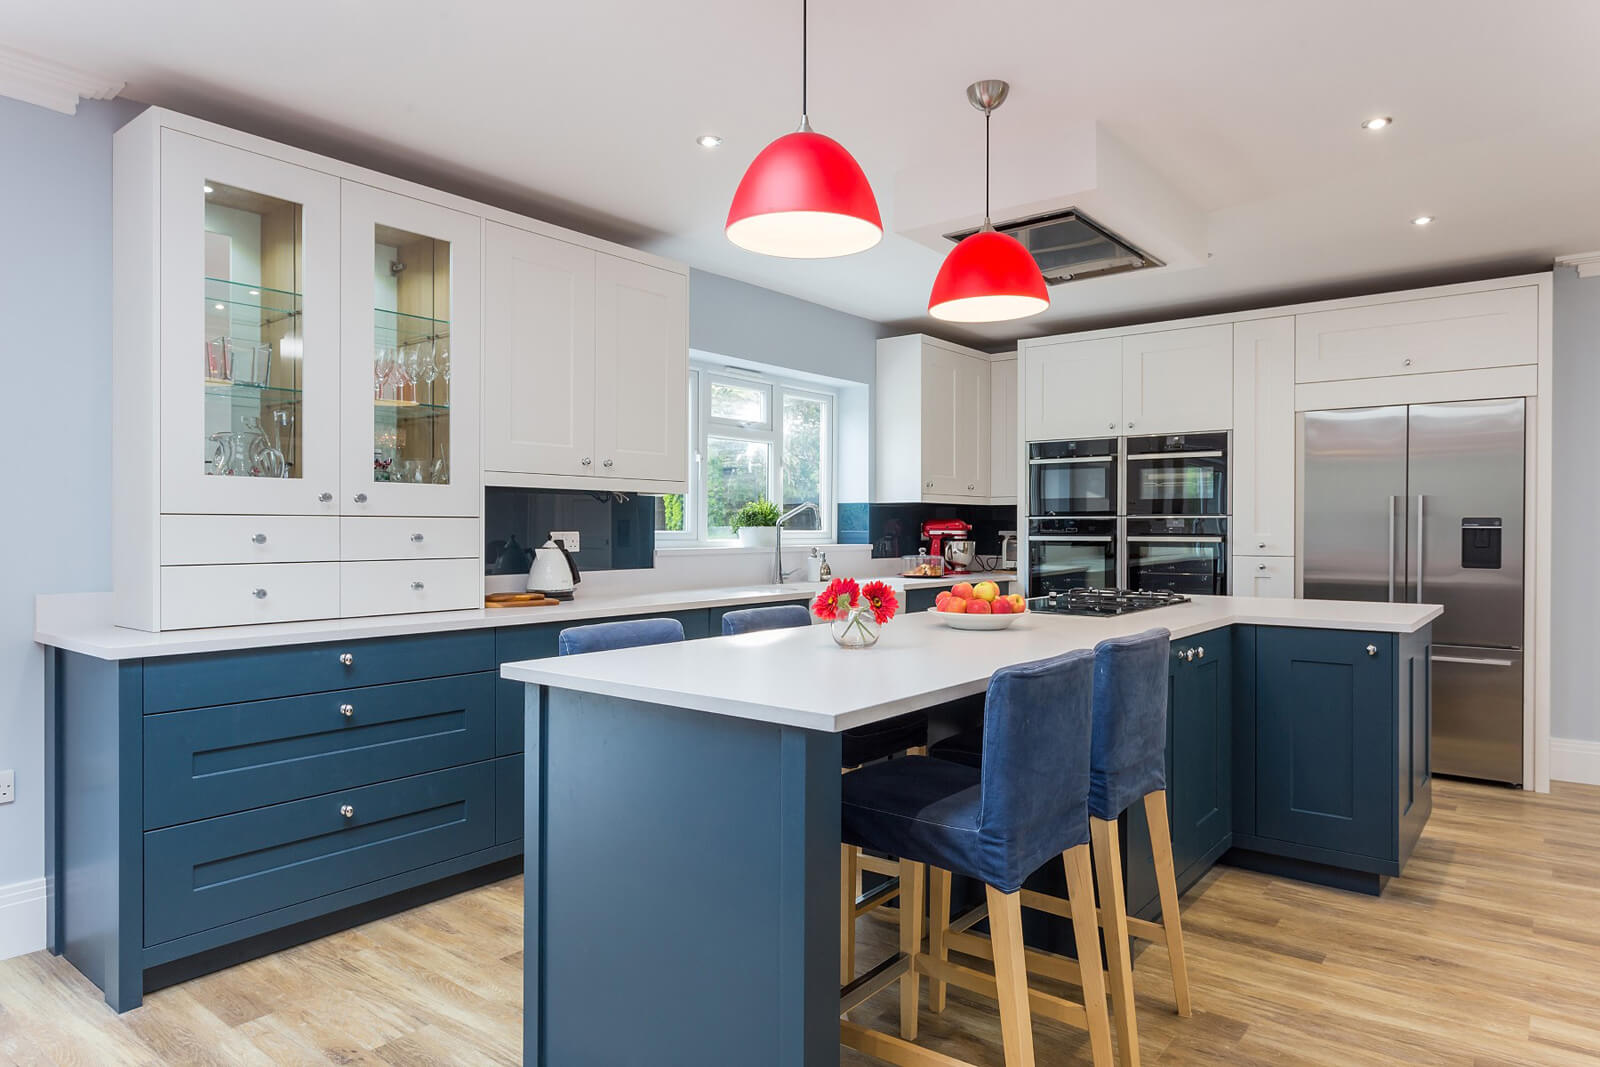 Painted Shaker Kitchens | Windsor | Second Nature Kitchens